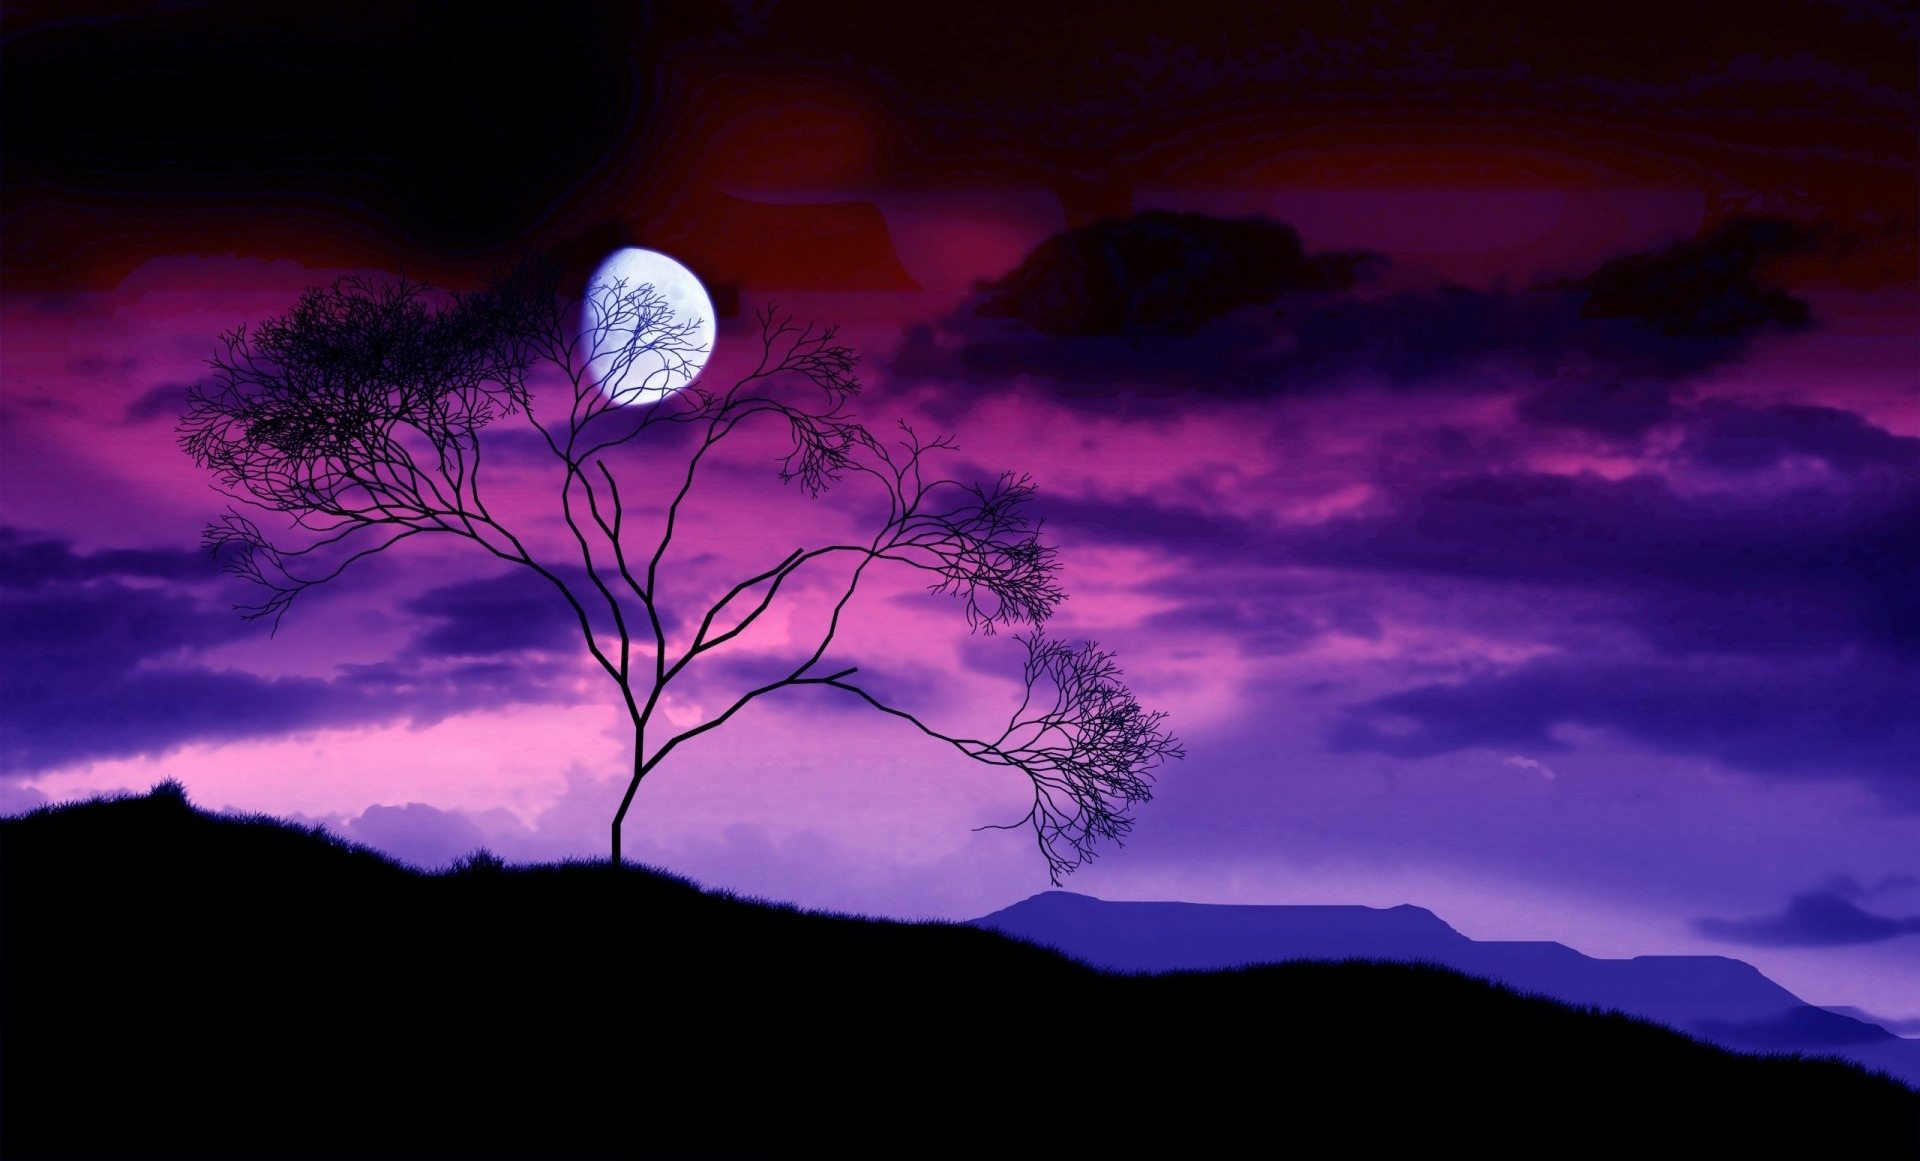 moon_behaind_the_tree_wallpaper_e4d6b